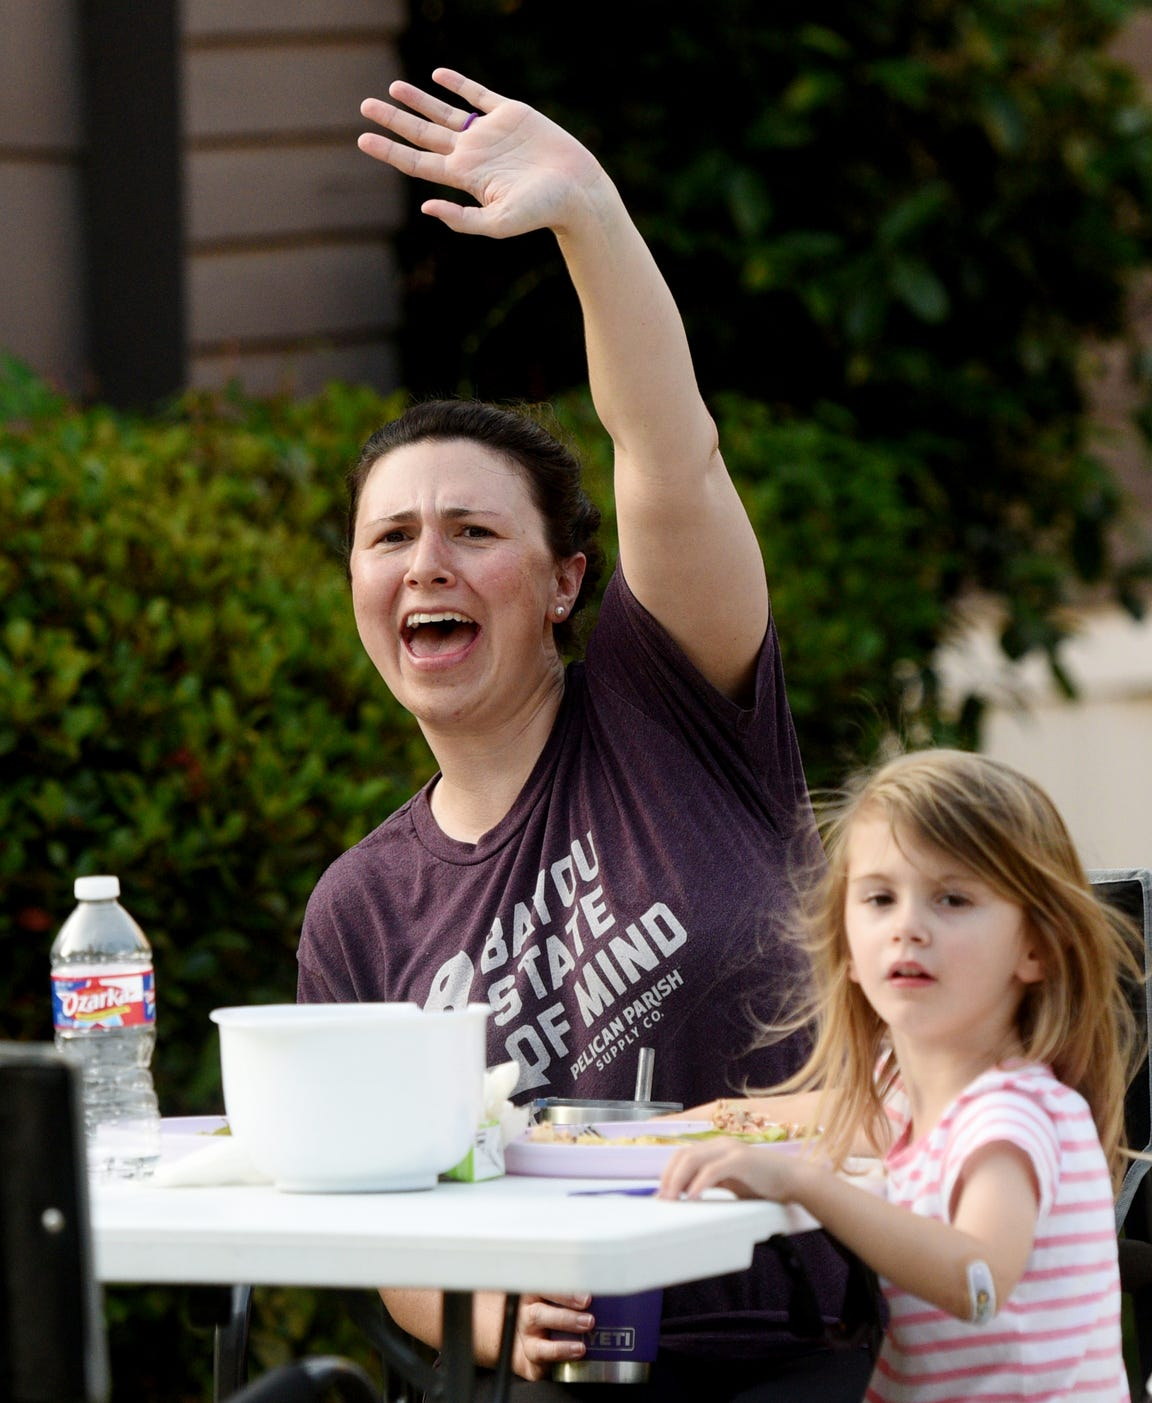 Carrie Osborne waves to a neighbor who drives by during the community dinners on the 700 block of Delaware Street.